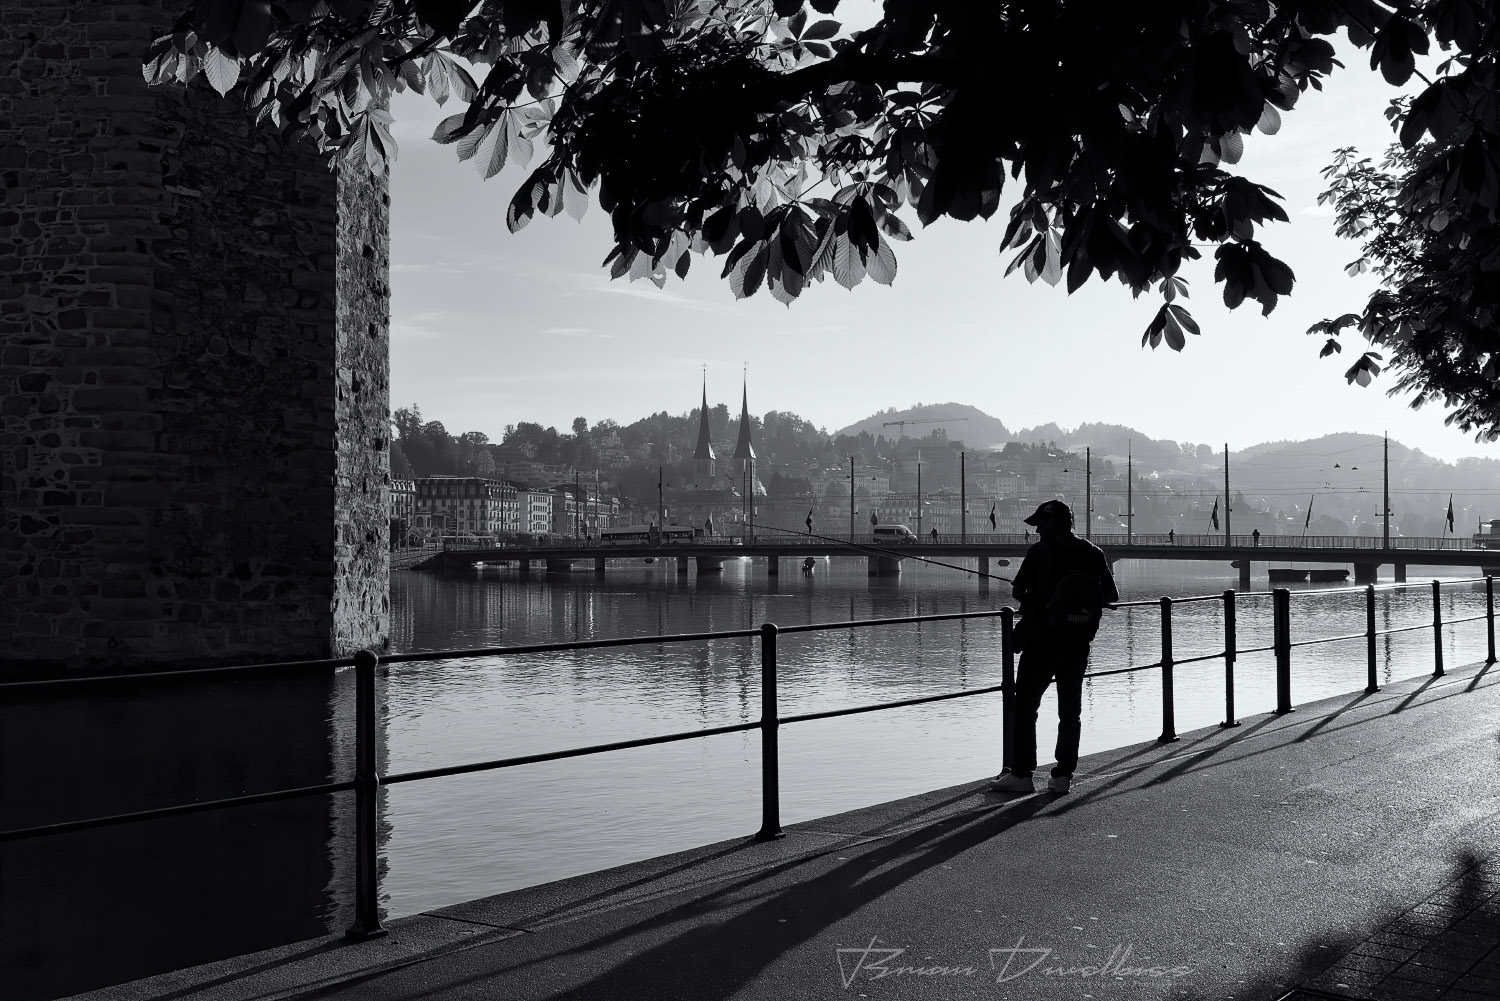 Fisherman on the Reuss River in Lucerne, Switzerland in black and white.